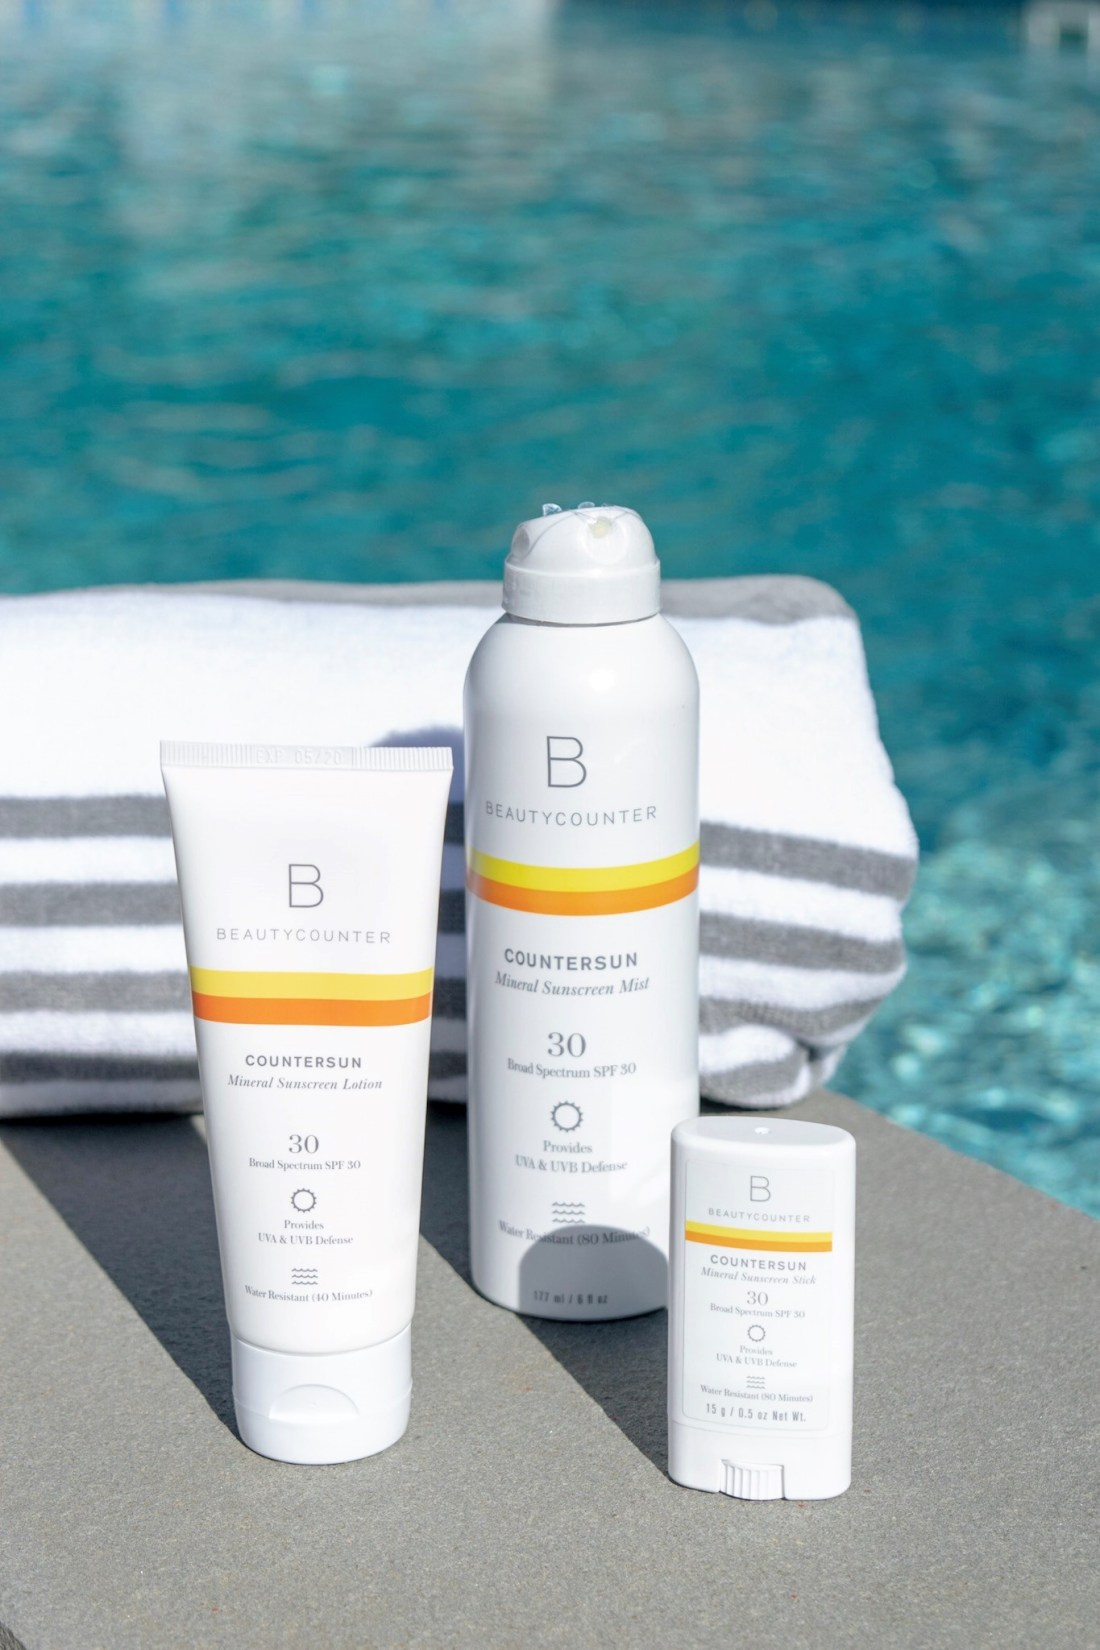 BeautyCounter Countersun Products